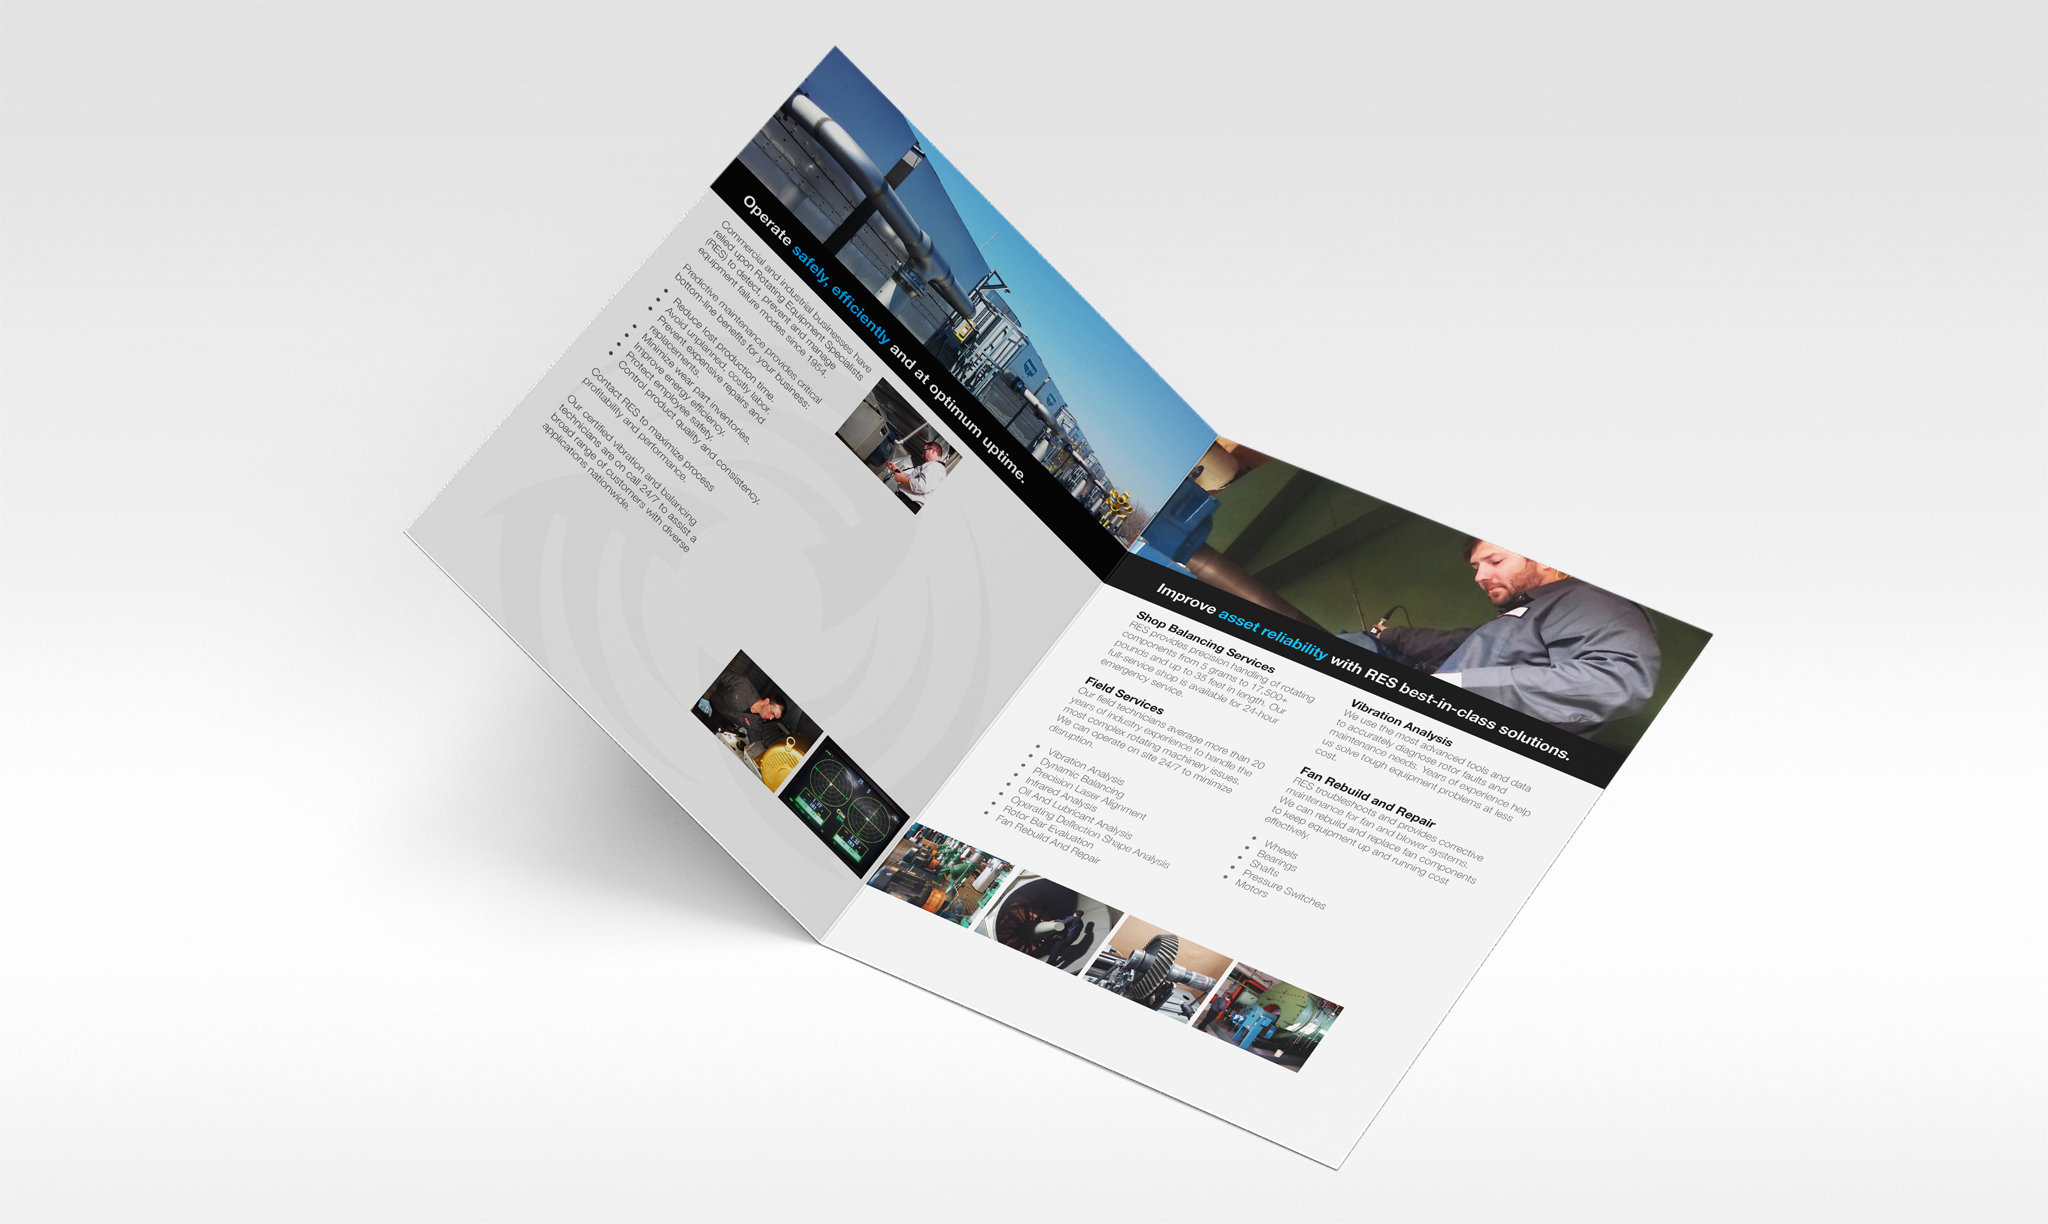 Rotating Equipment Specialists Brochure Inside